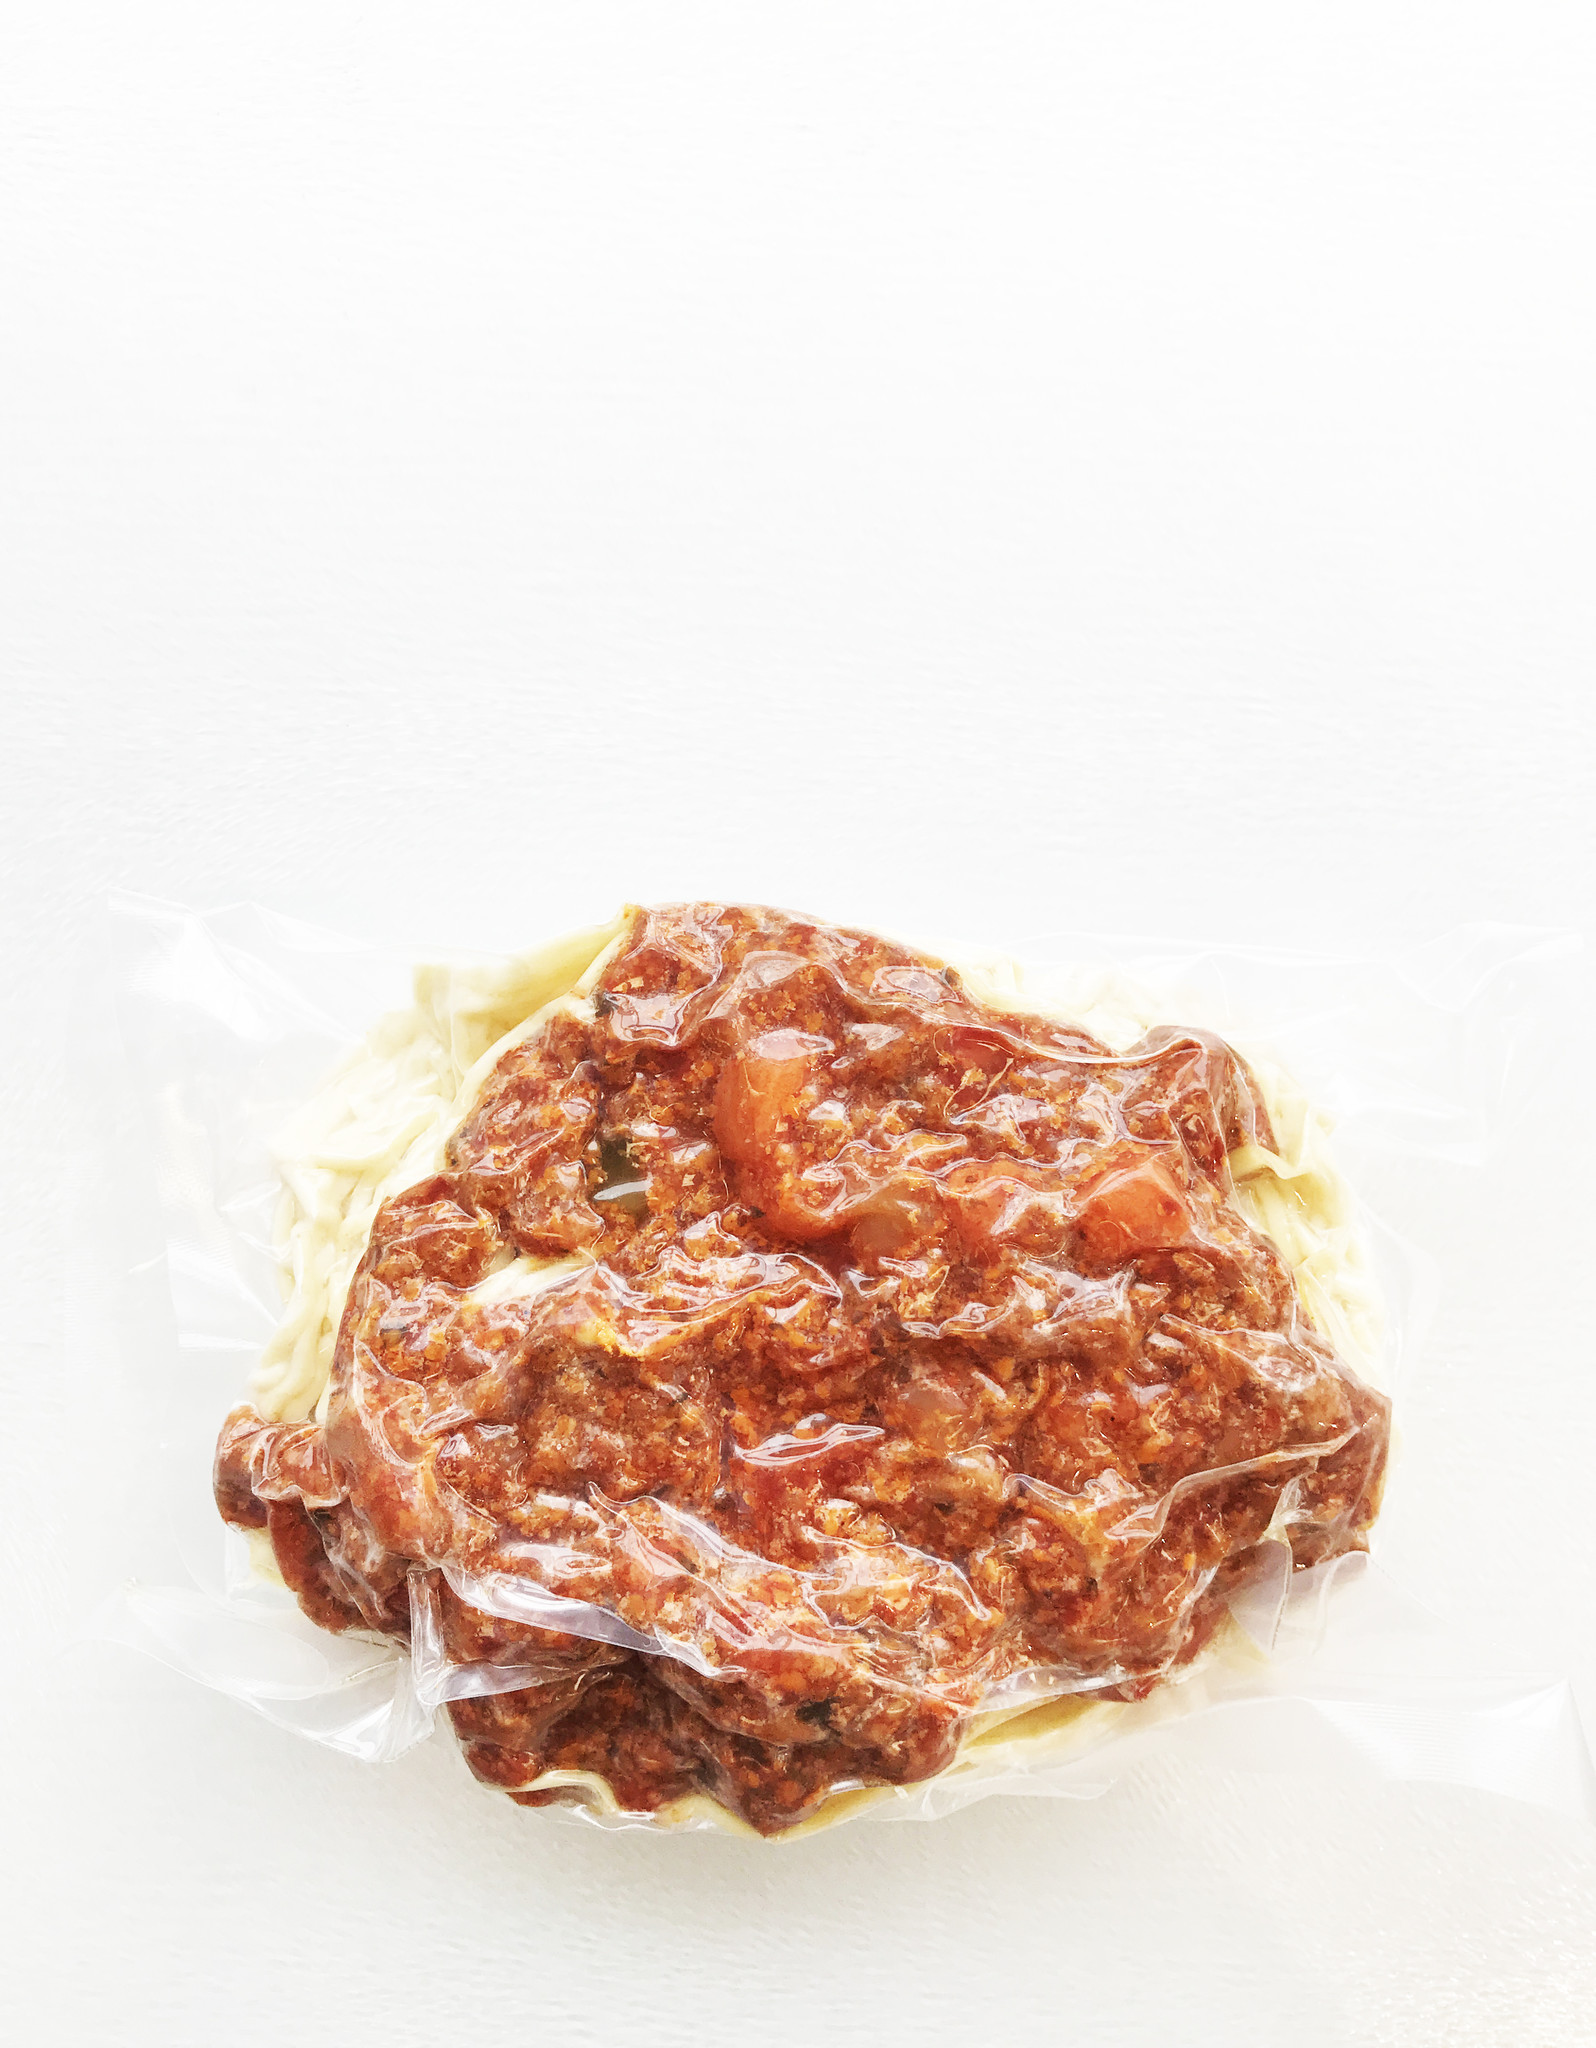 Spaghettini with meat sauce (325g)